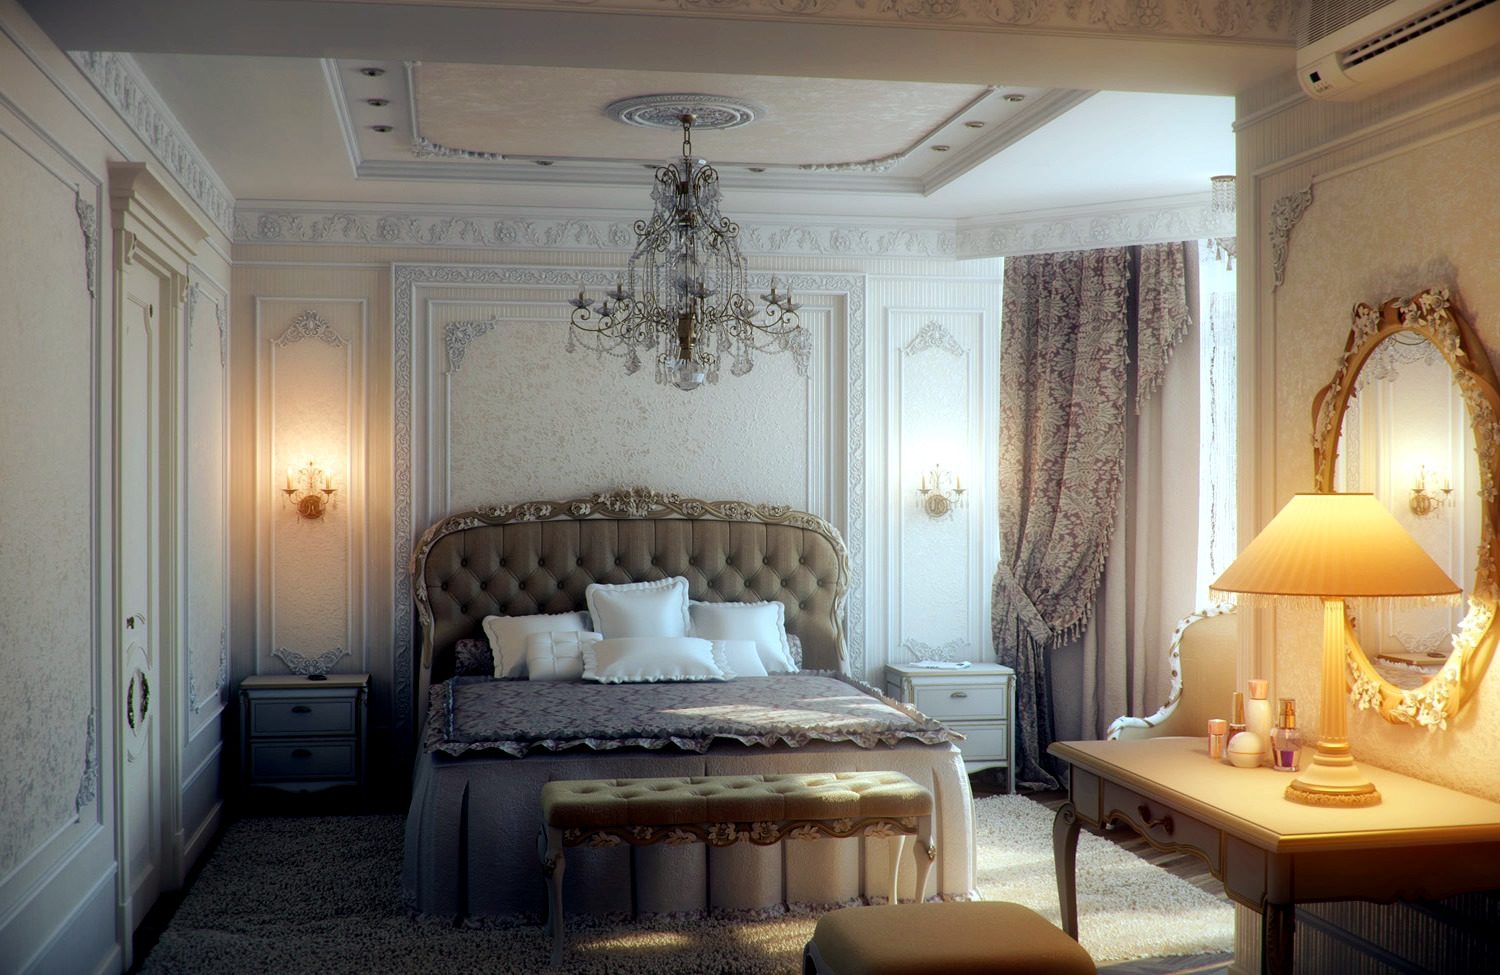 Bedroom with traditional elegance interior design ideas for Interior design bedroom traditional